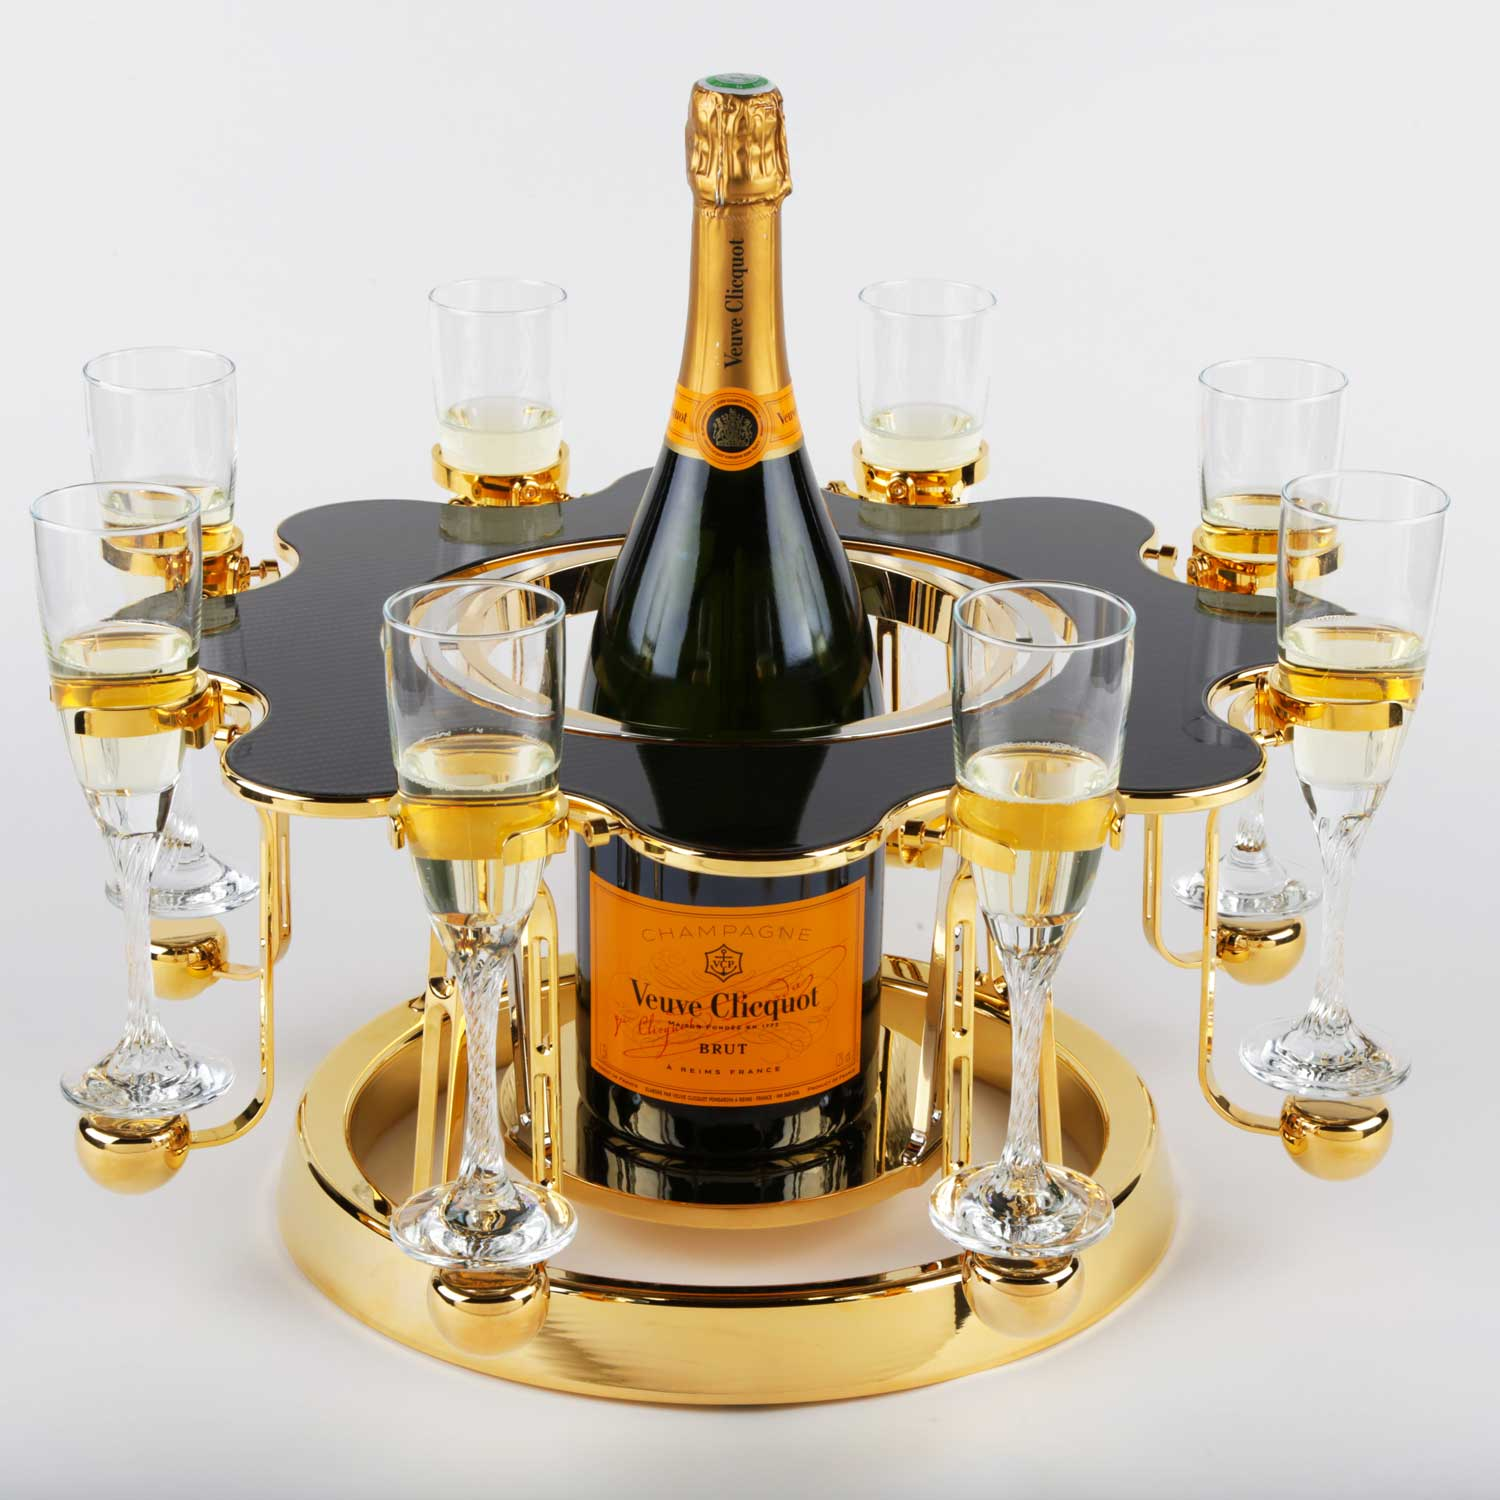 Tulip By Germain luxury champagne bucket Carbon Fiber edition Veuve cliquot